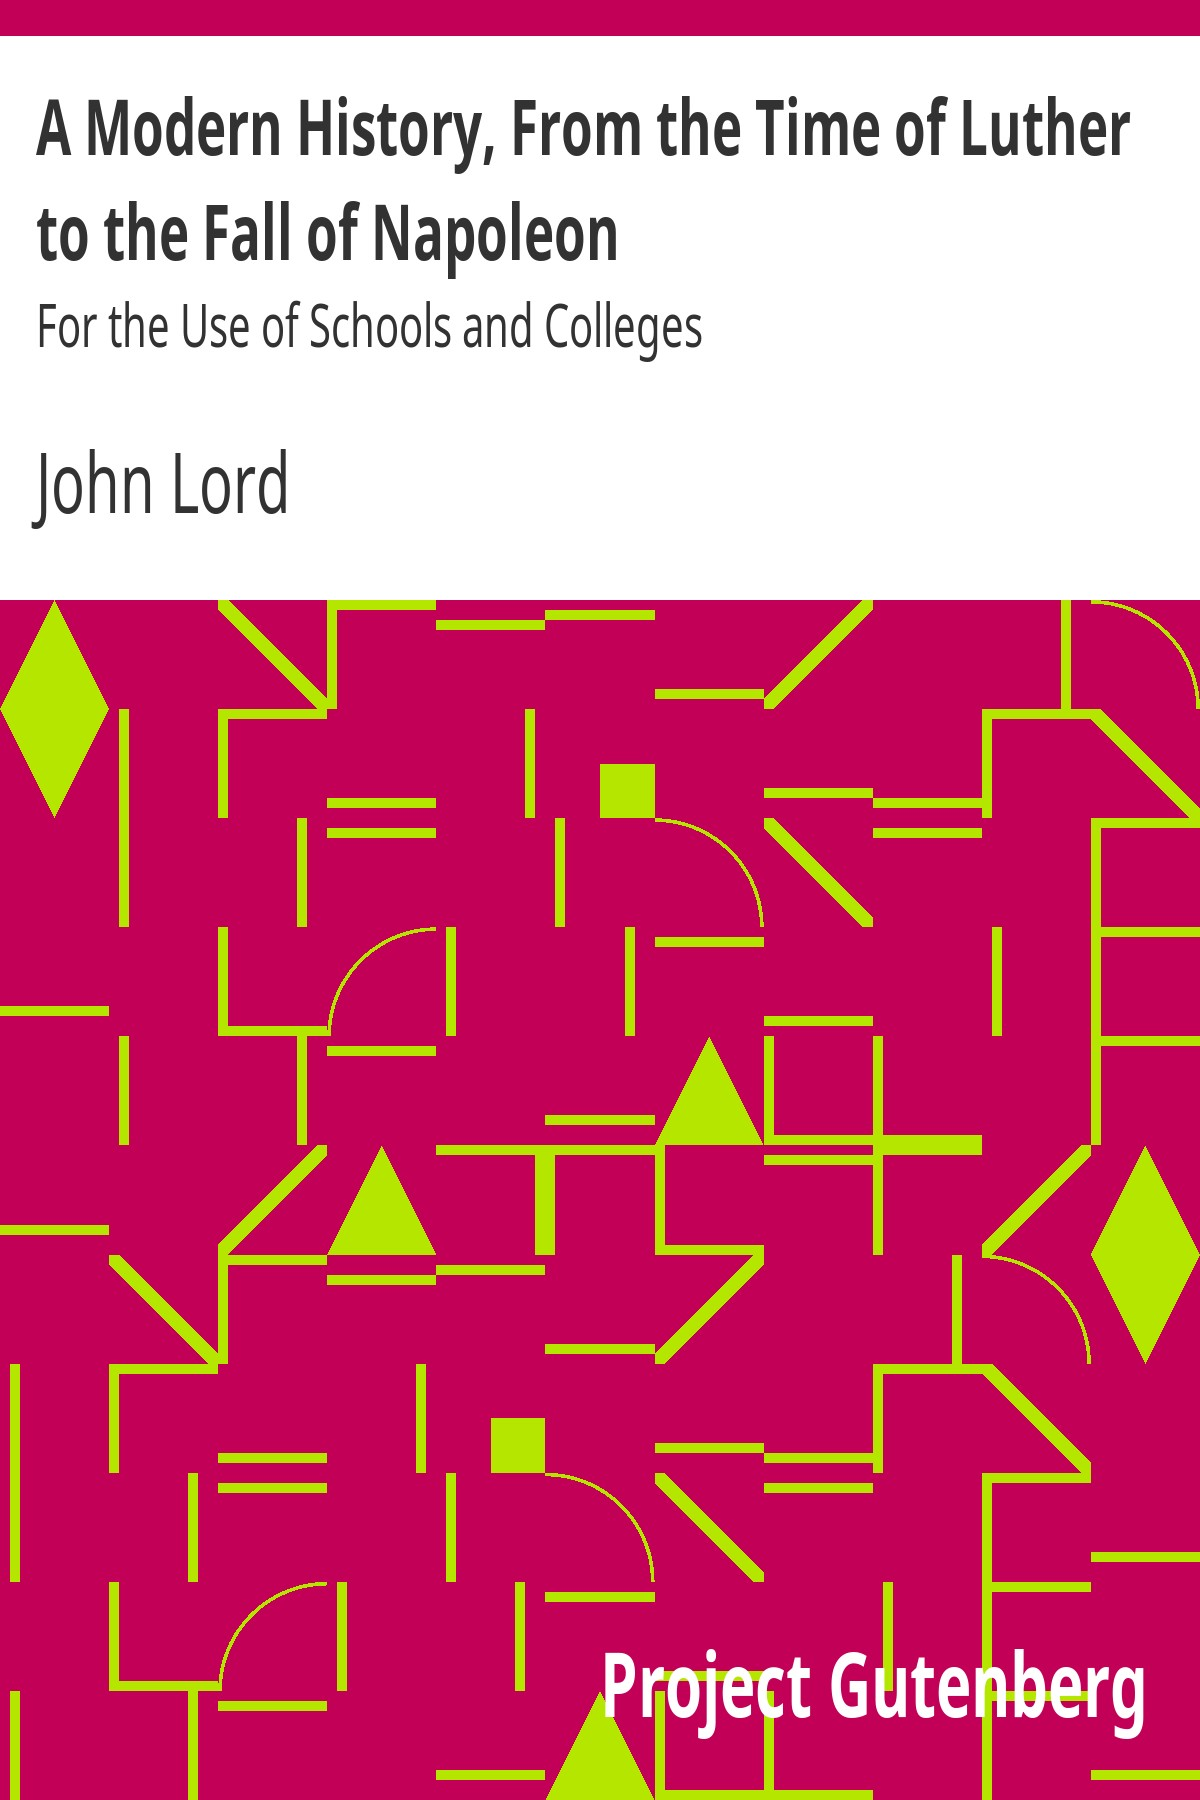 John Lord A Modern History, From the Time of Luther to the Fall of Napoleon For the Use of Schools and Colleges